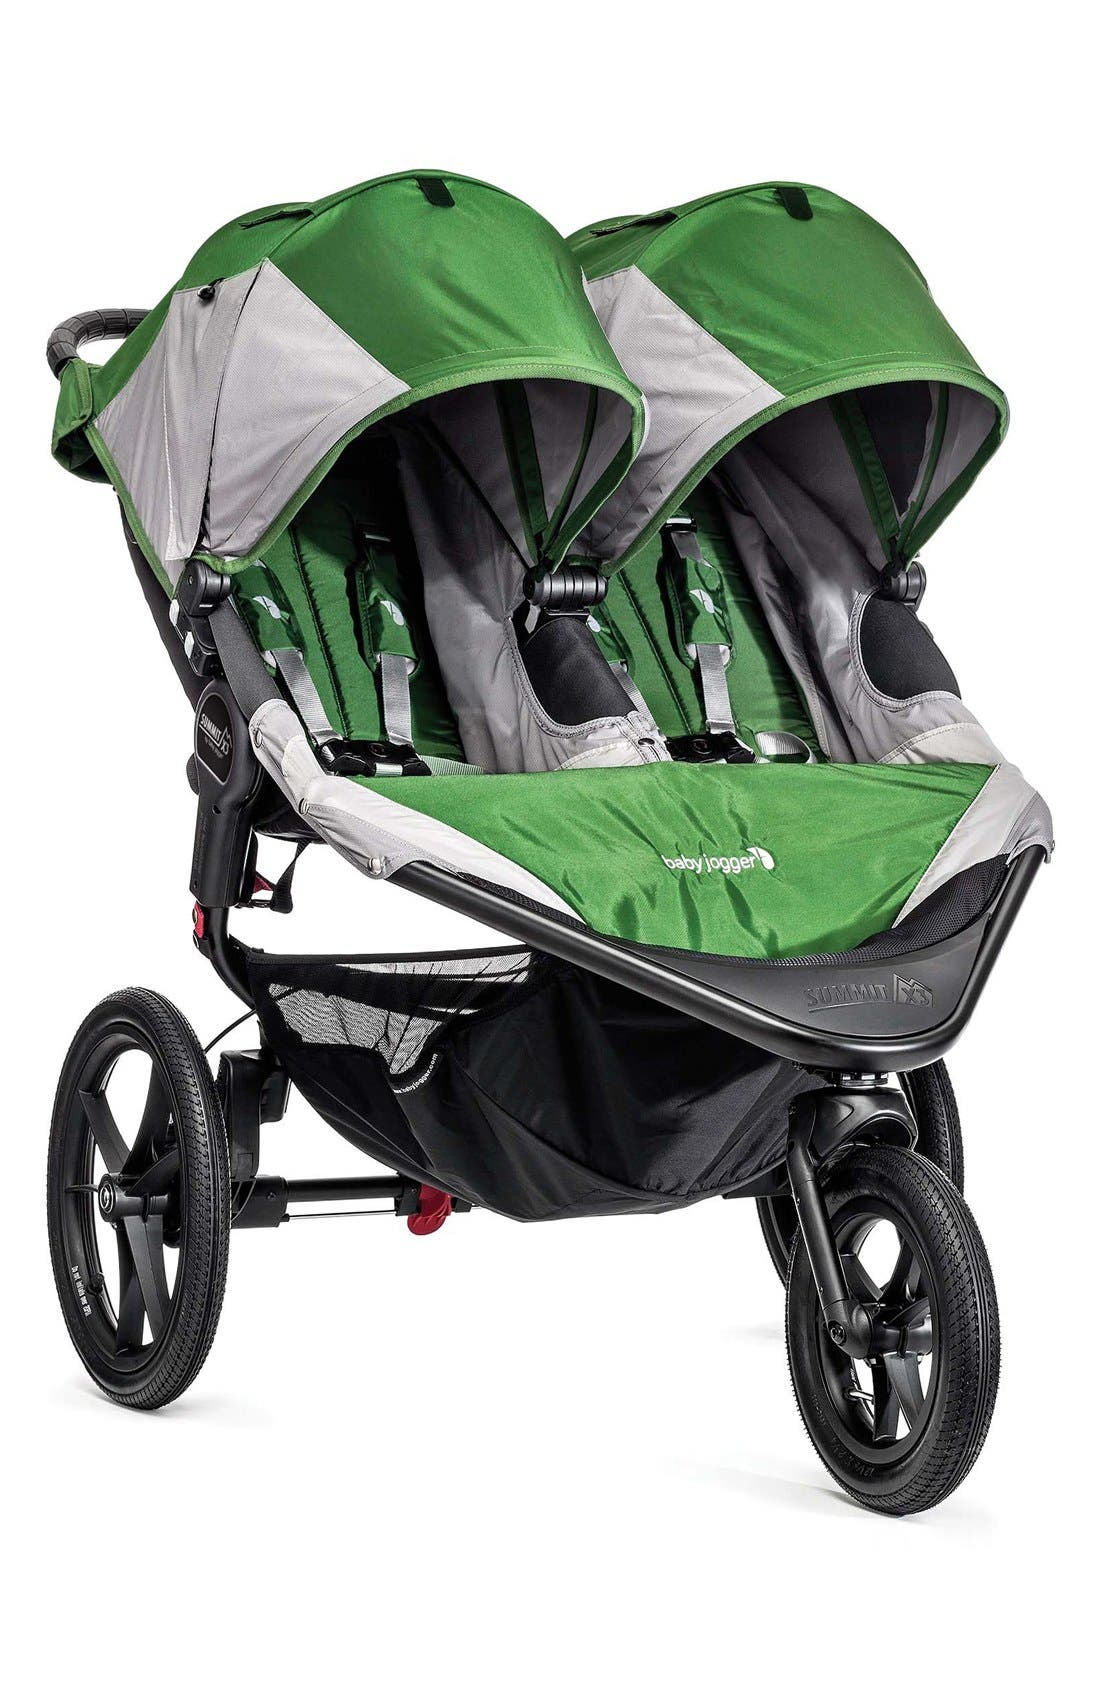 Main Image - Baby Jogger 'Summit X3' Double Stroller